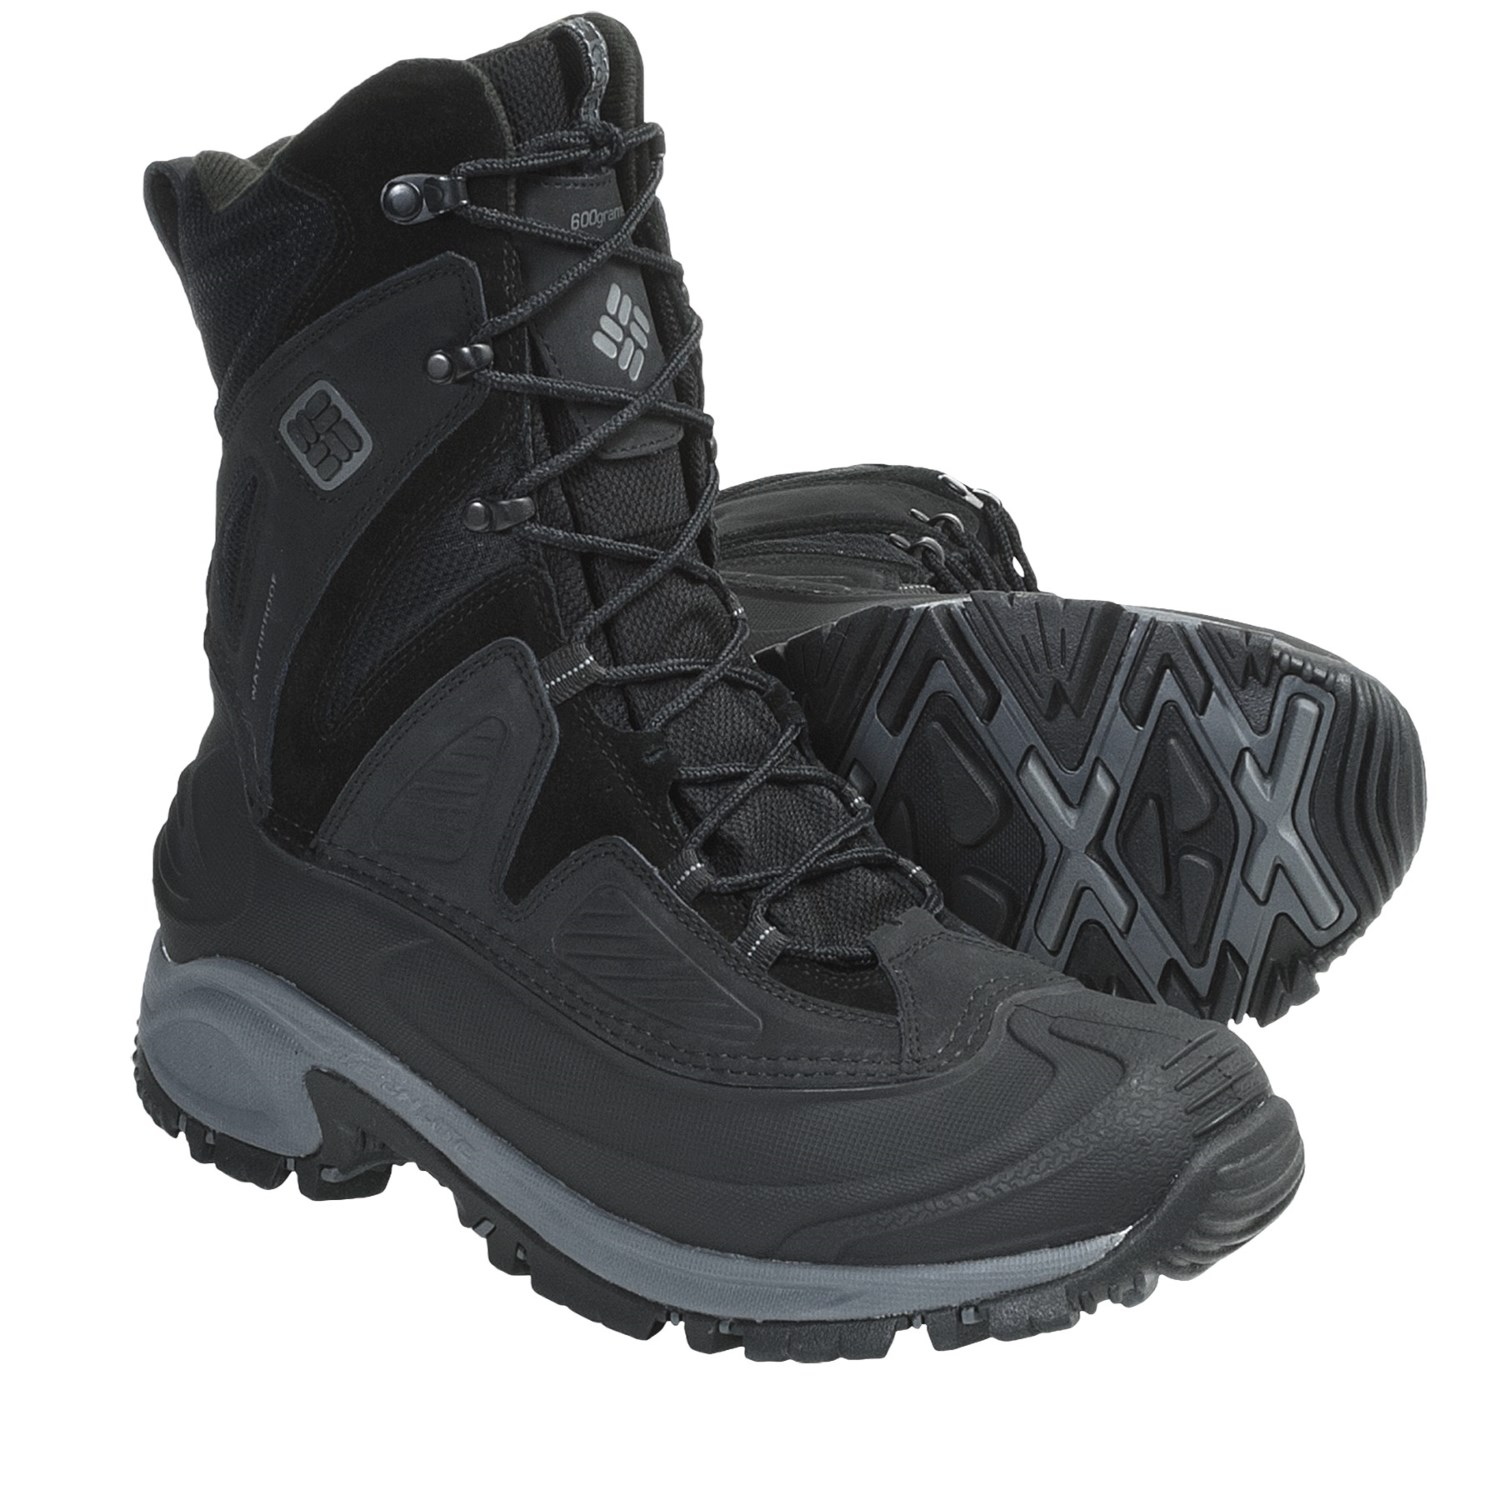 Keen Winter Boots Men Images Decorating Ideas Stylish Snow For